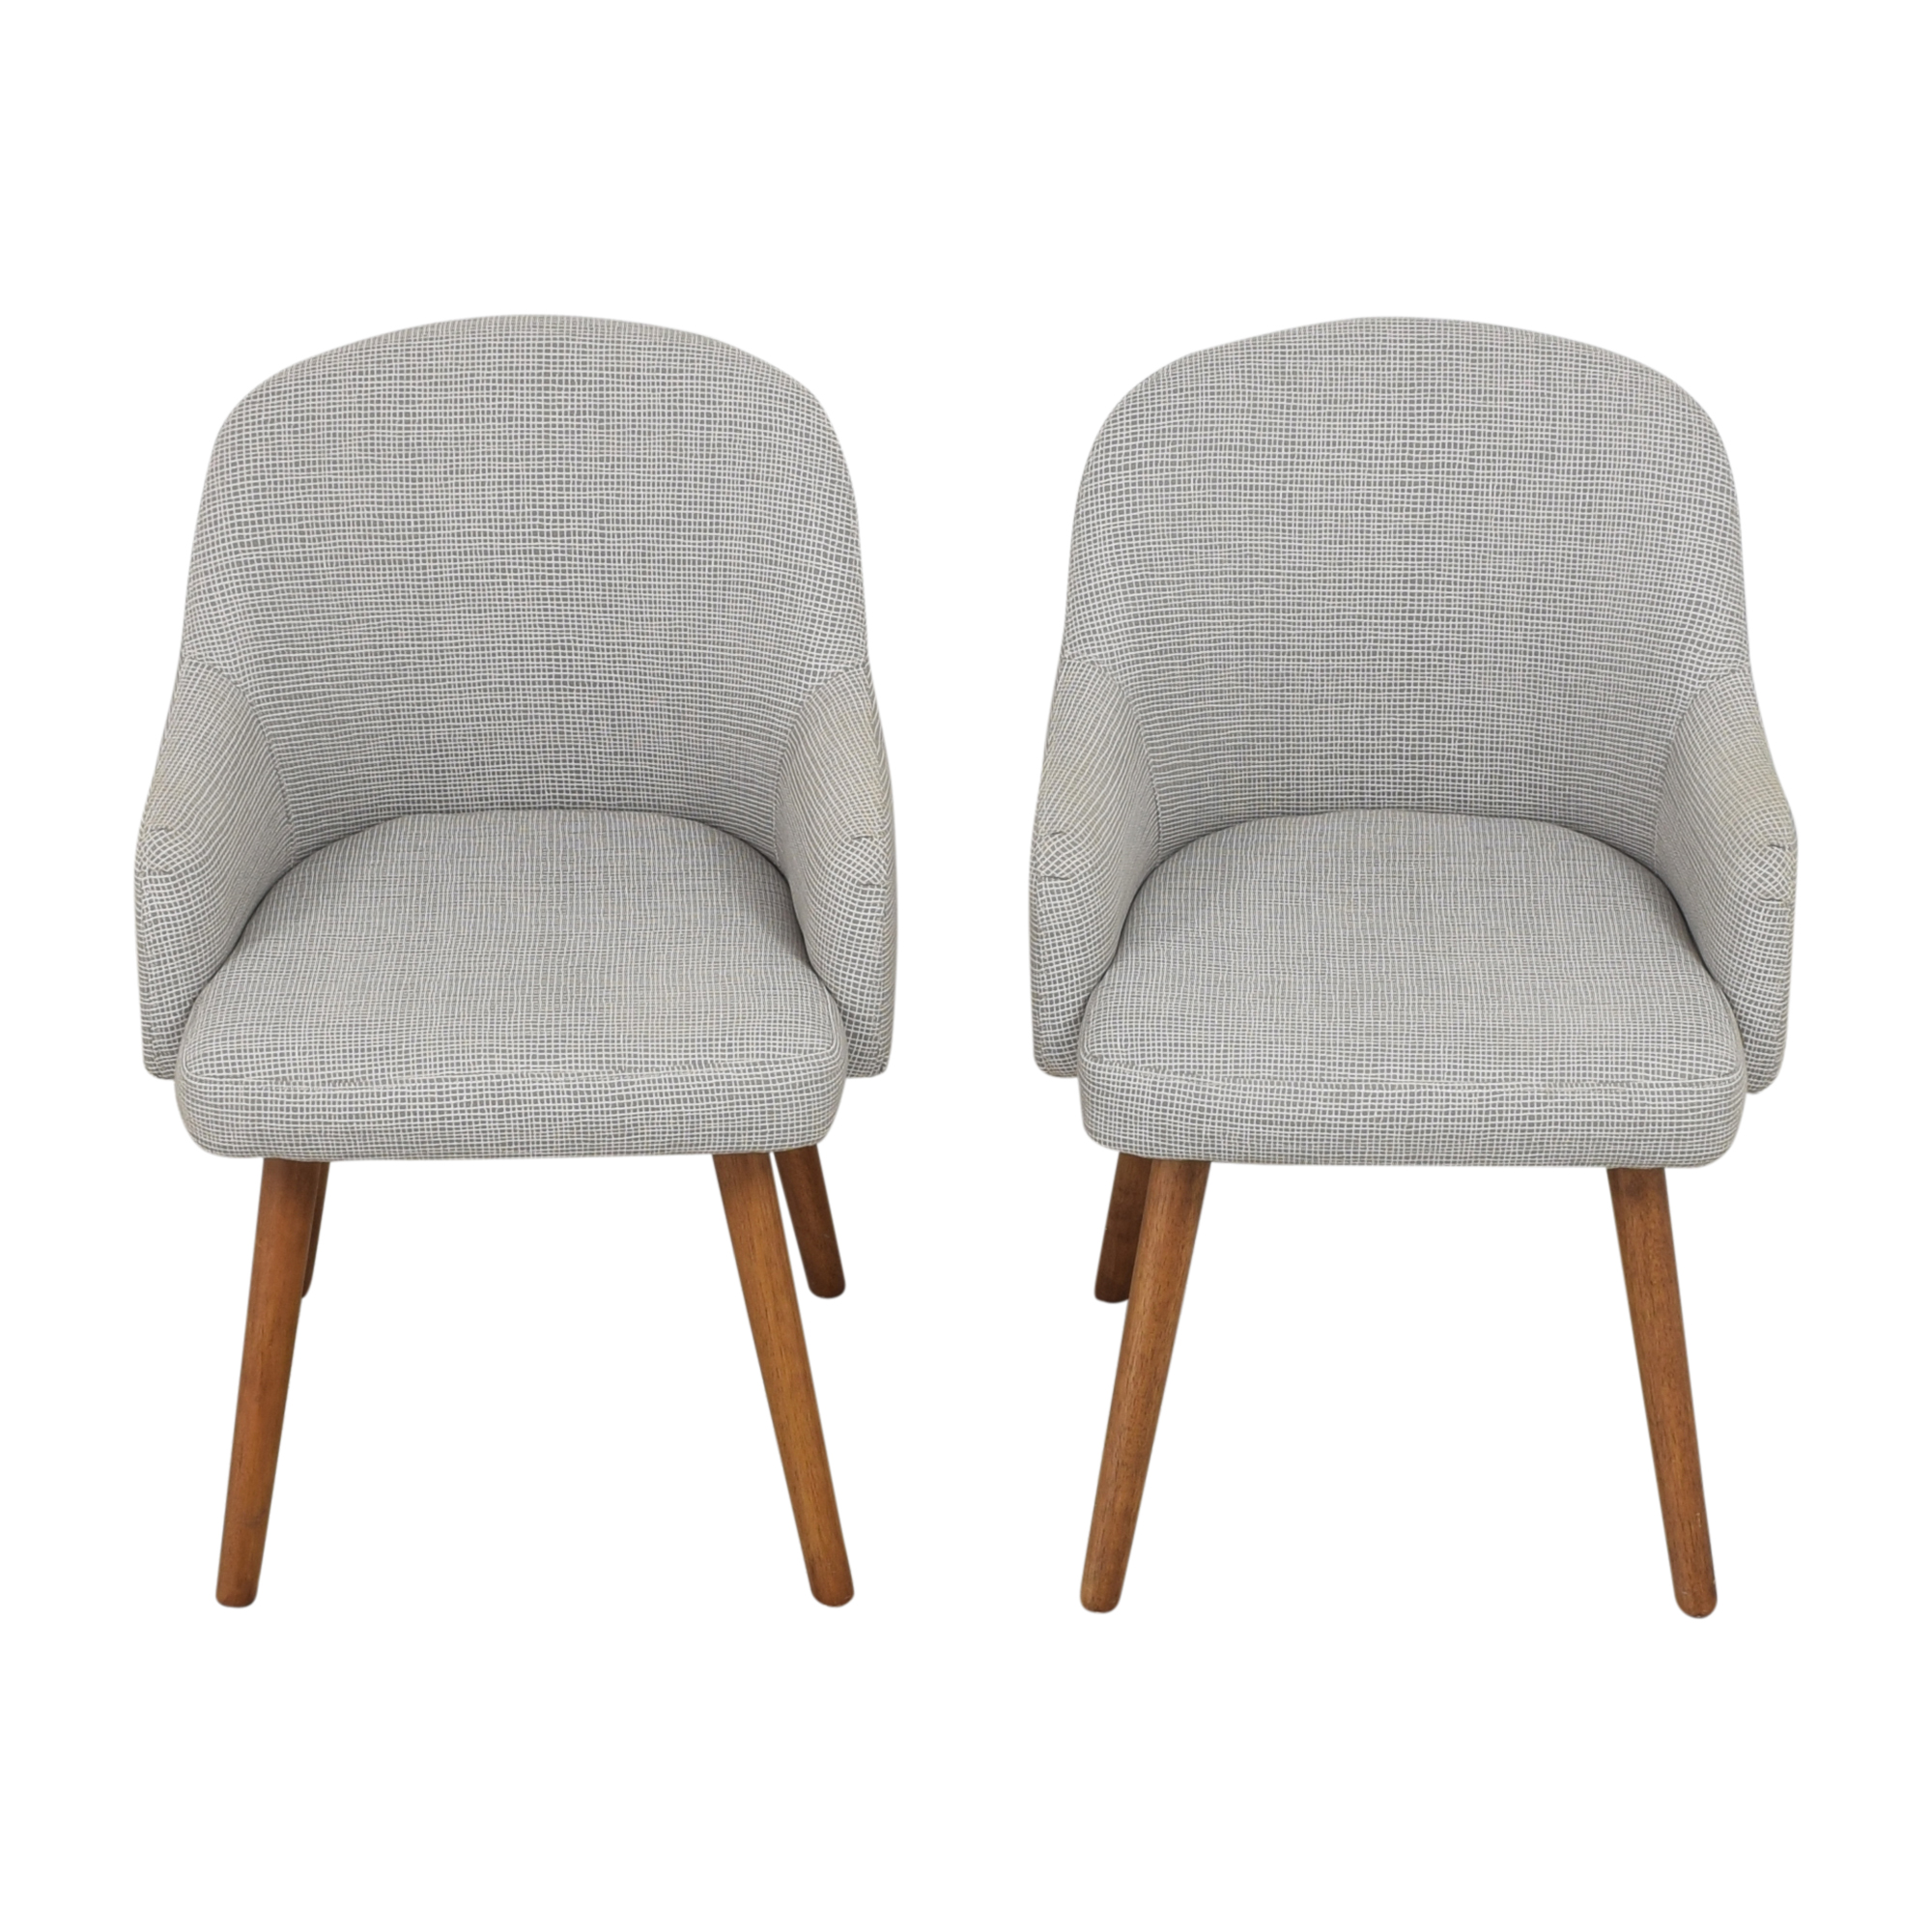 West Elm West Elm Saddle Dining Chairs second hand